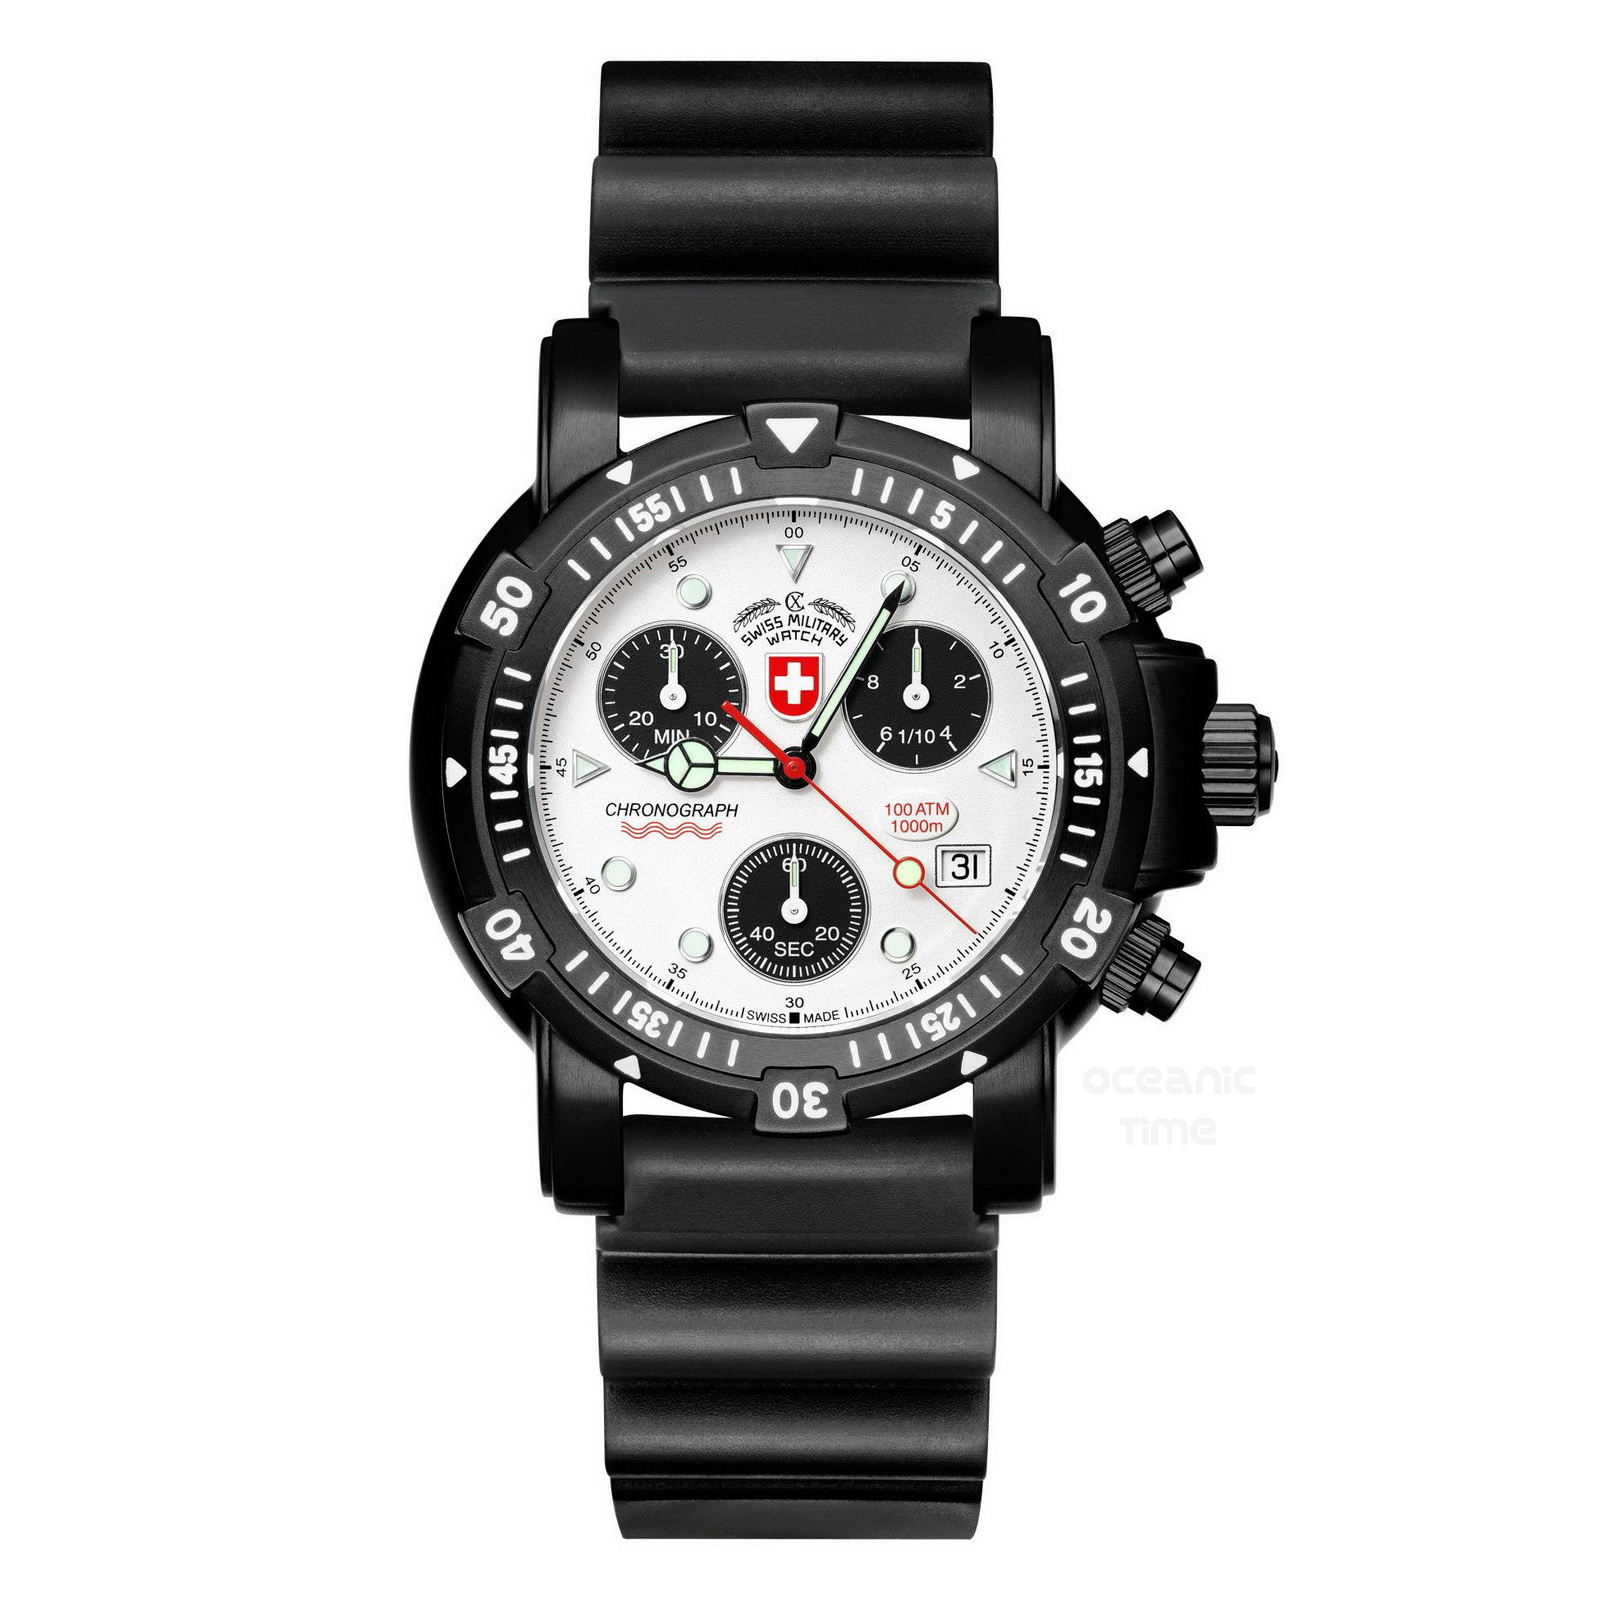 67efbe688d8 Wenger Swiss Military Watch 79150 Swiss Army Military: CX Swiss Military  Watch SEAWOLF I Scuba NERO